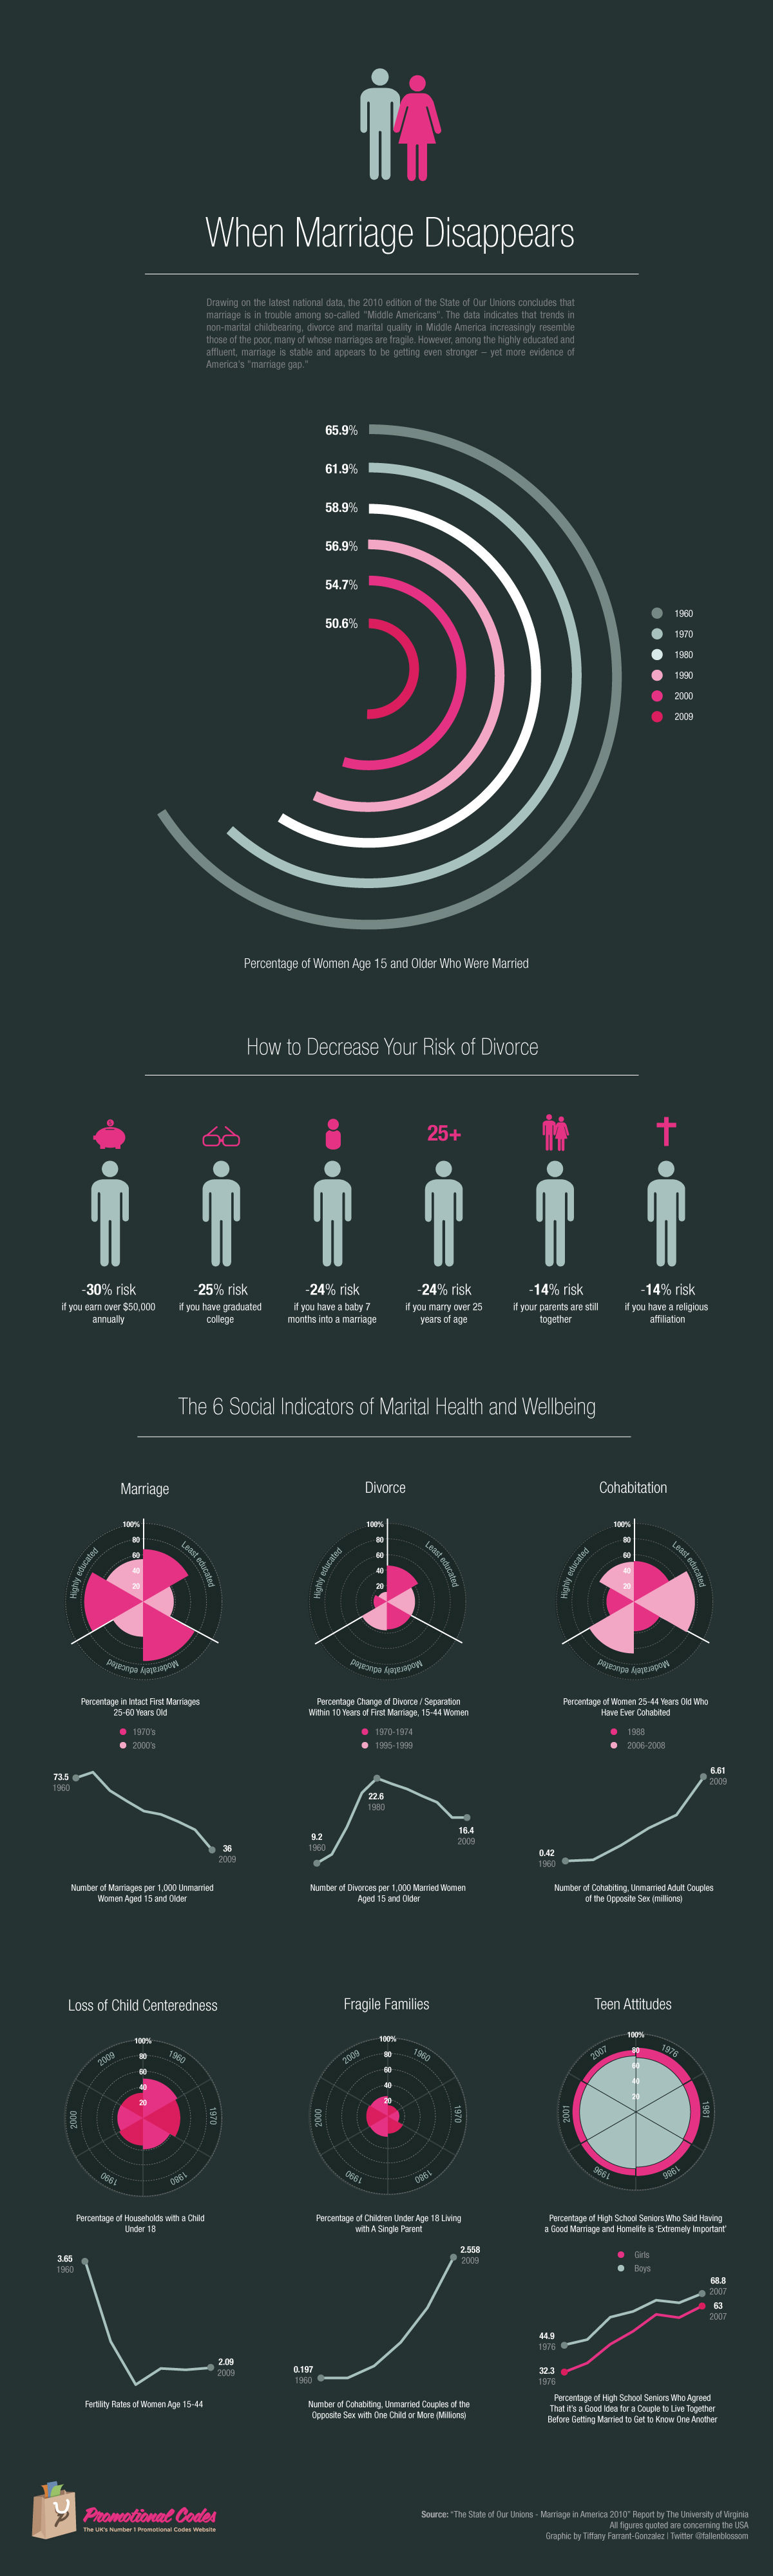 marriage trends infographic